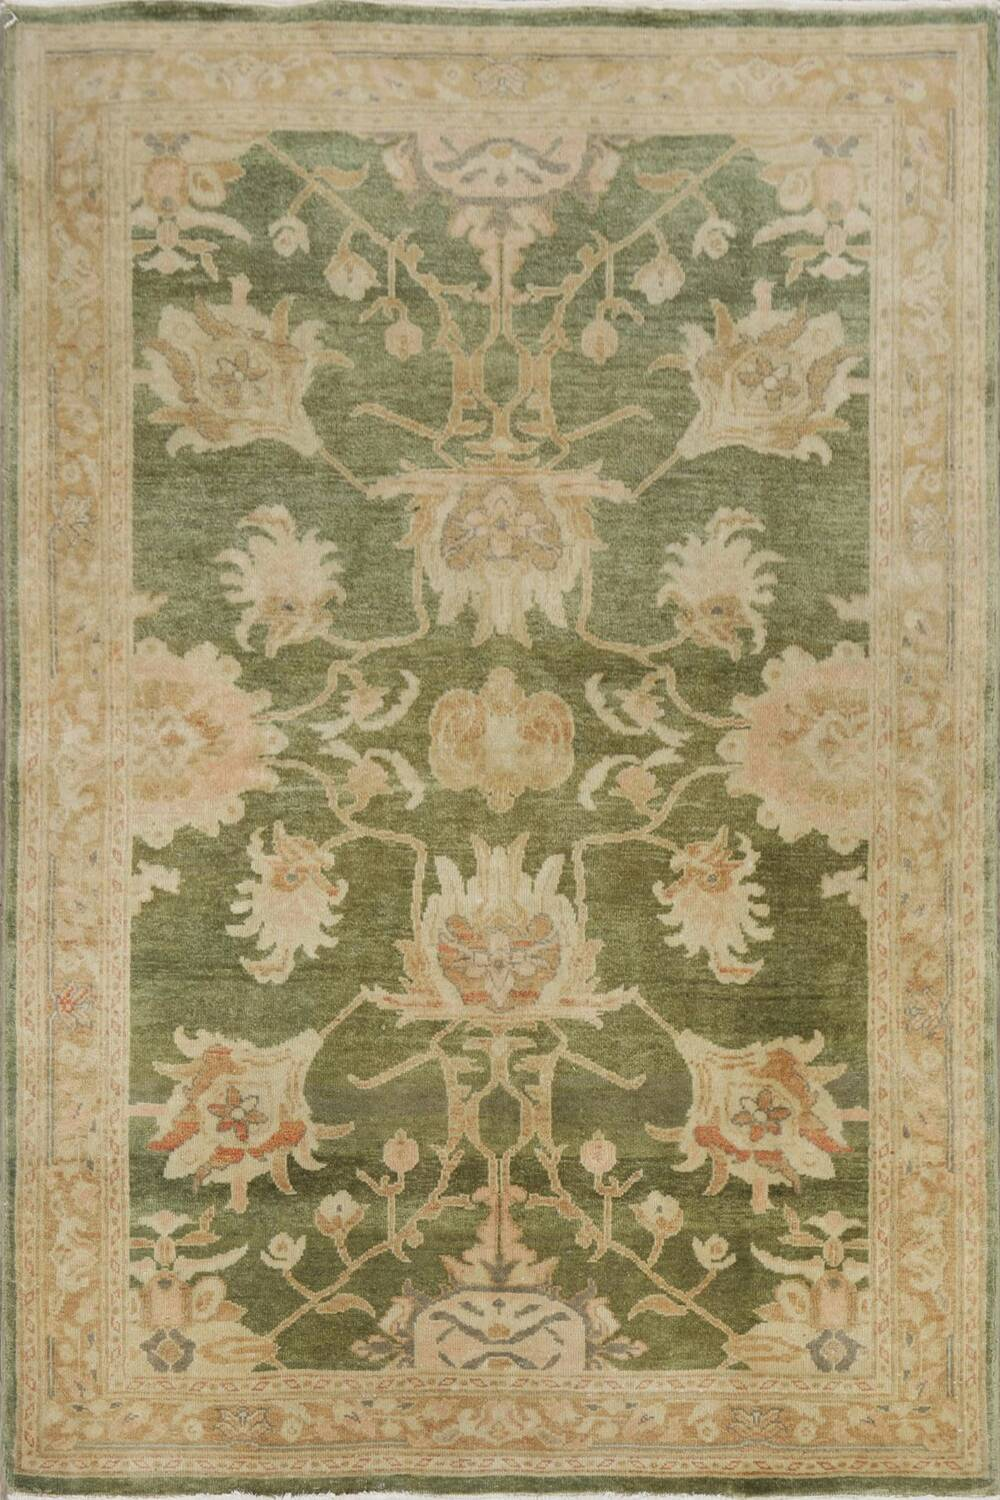 Vegetable Dye Floral Green Oushak Egyptian Area Rug 4x6 image 1